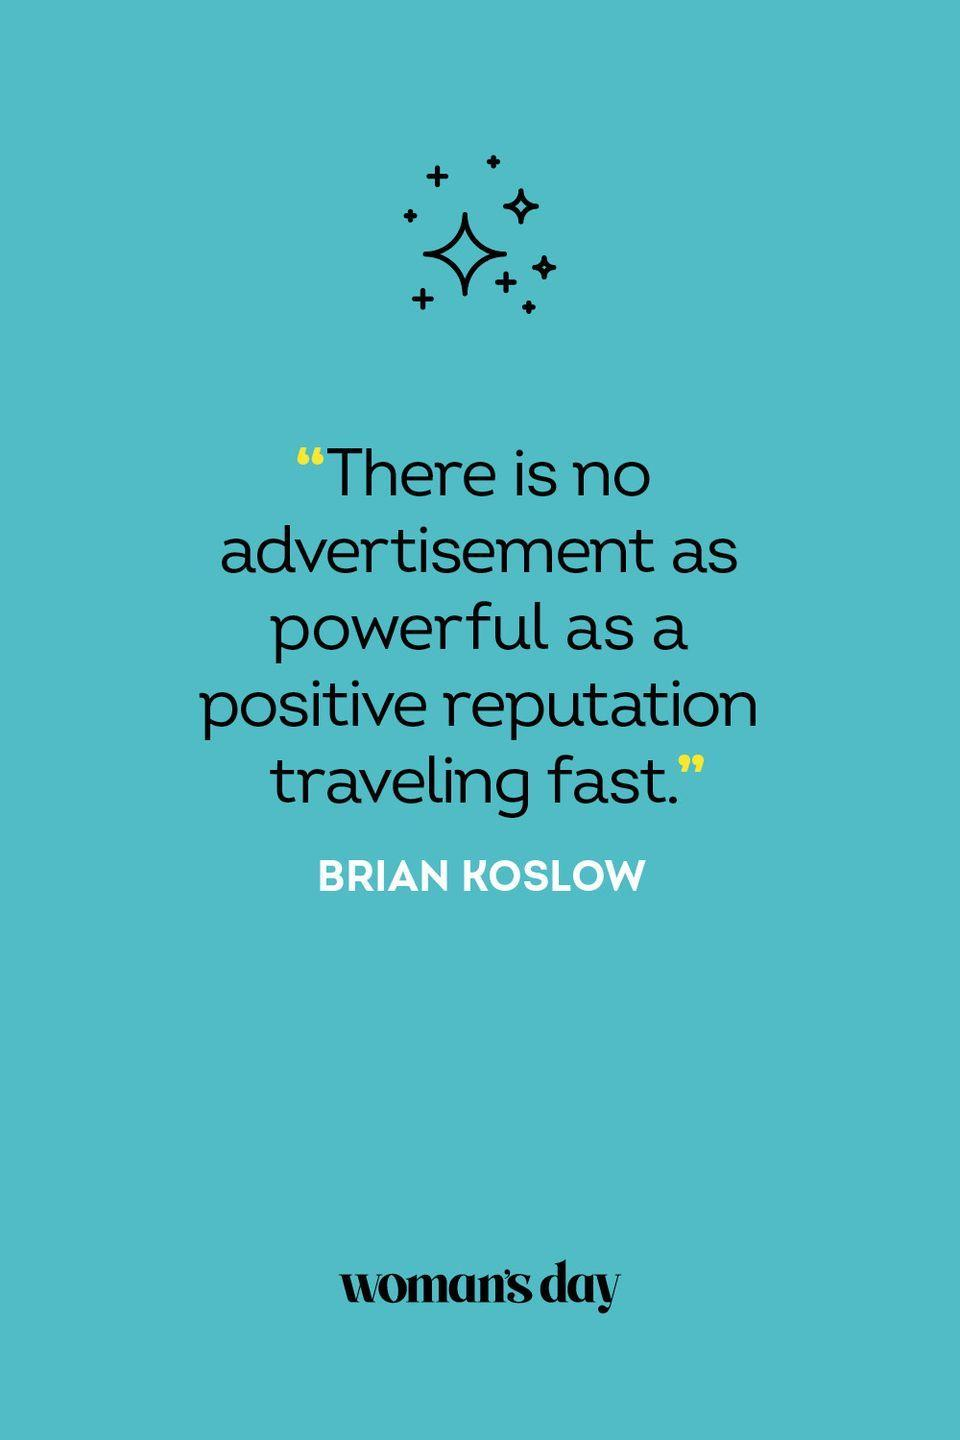 <p>There is no advertisement as powerful as a positive reputation traveling fast.</p>